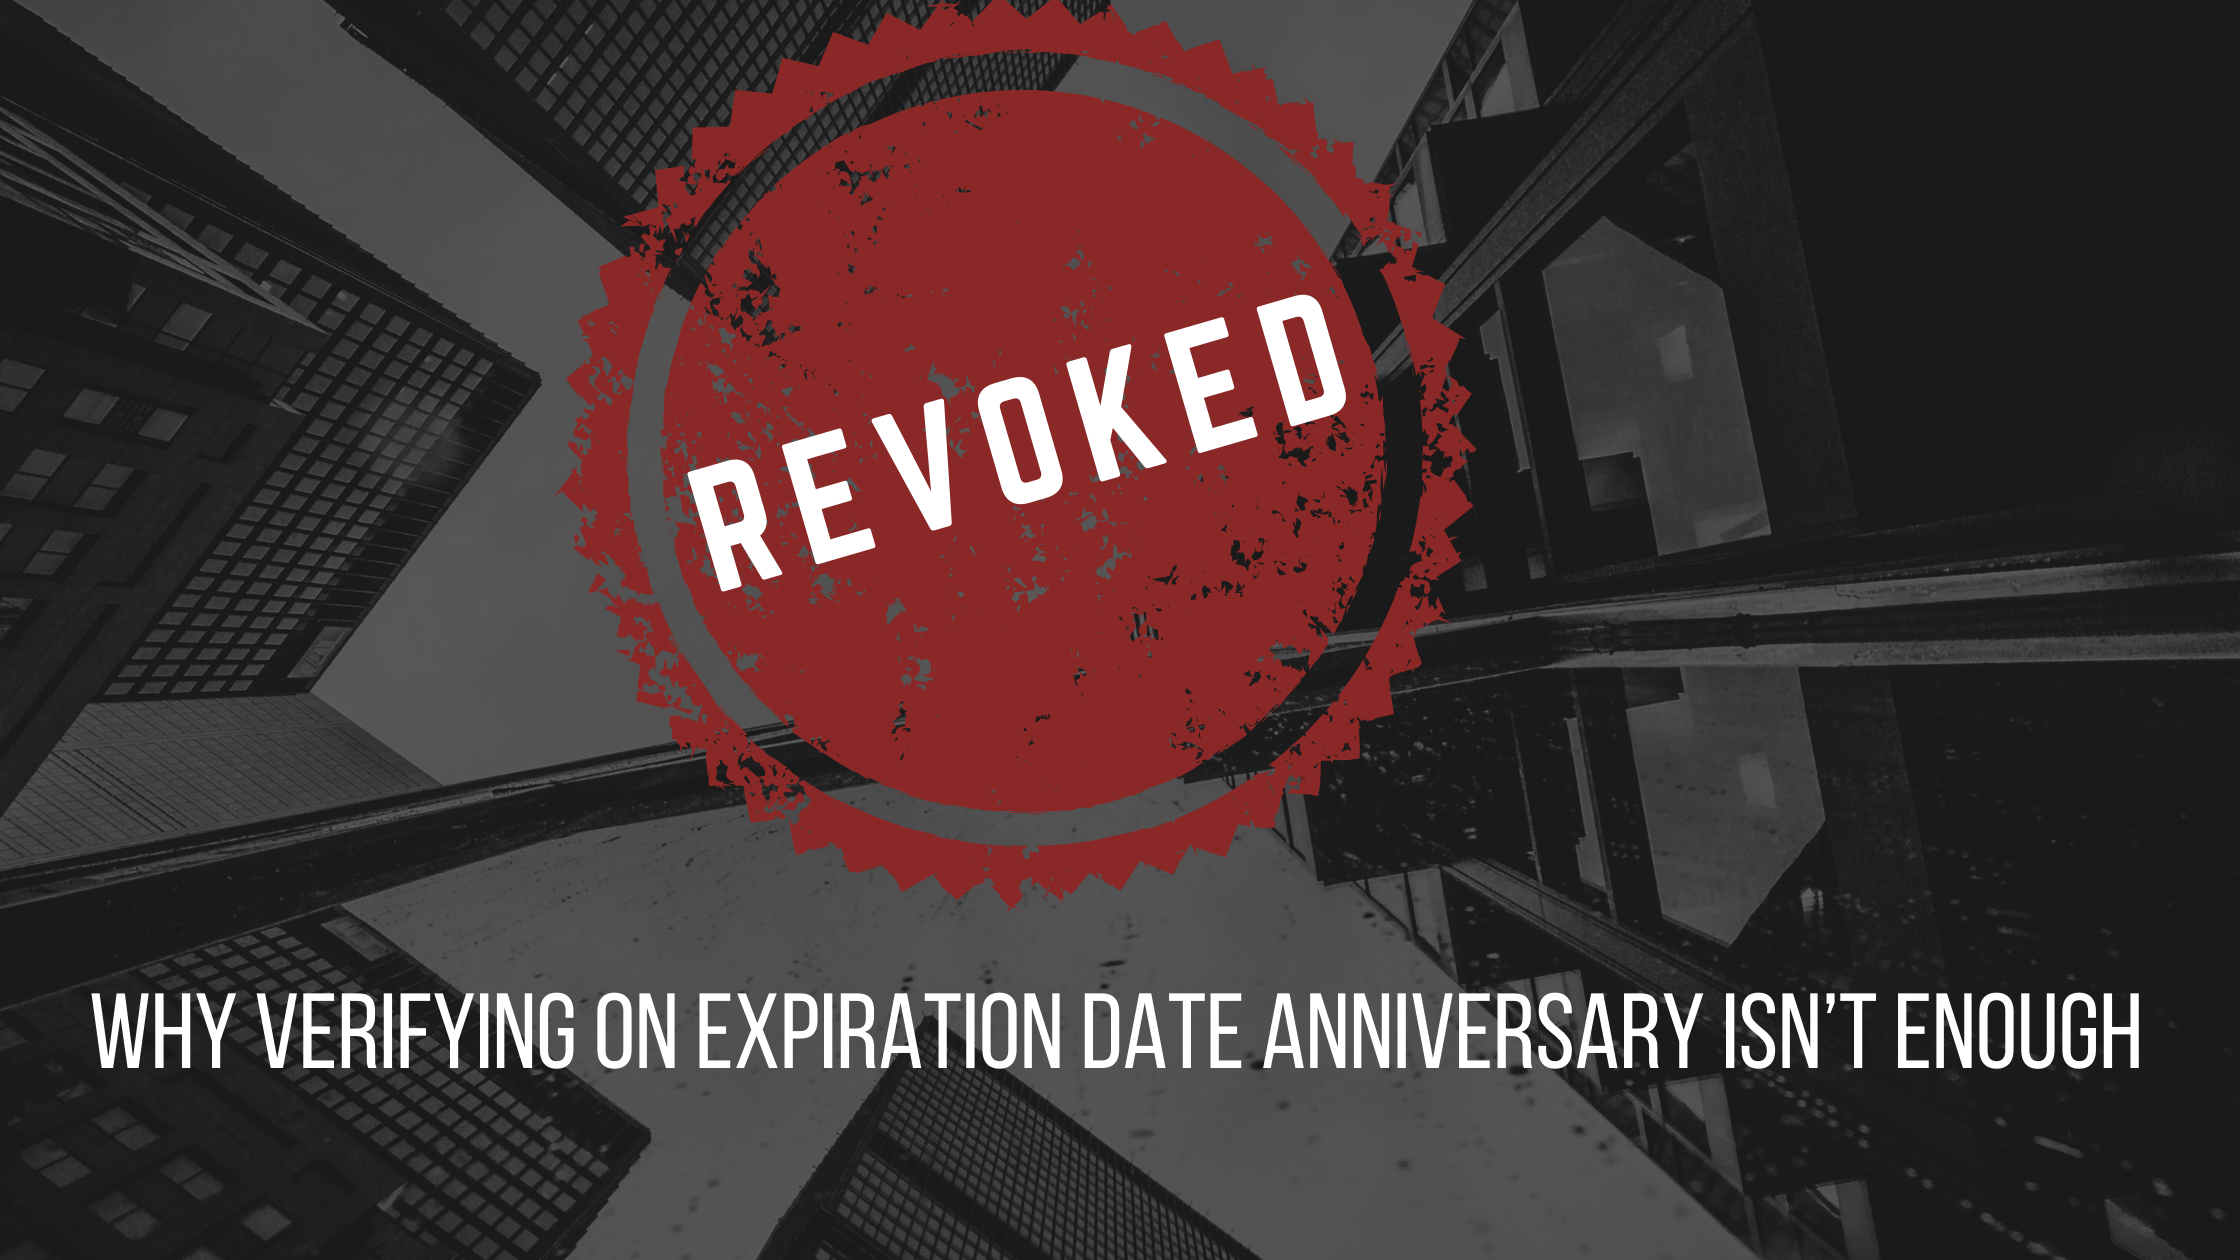 Why Verifying on Expiration Date Anniversary Isn't Enough